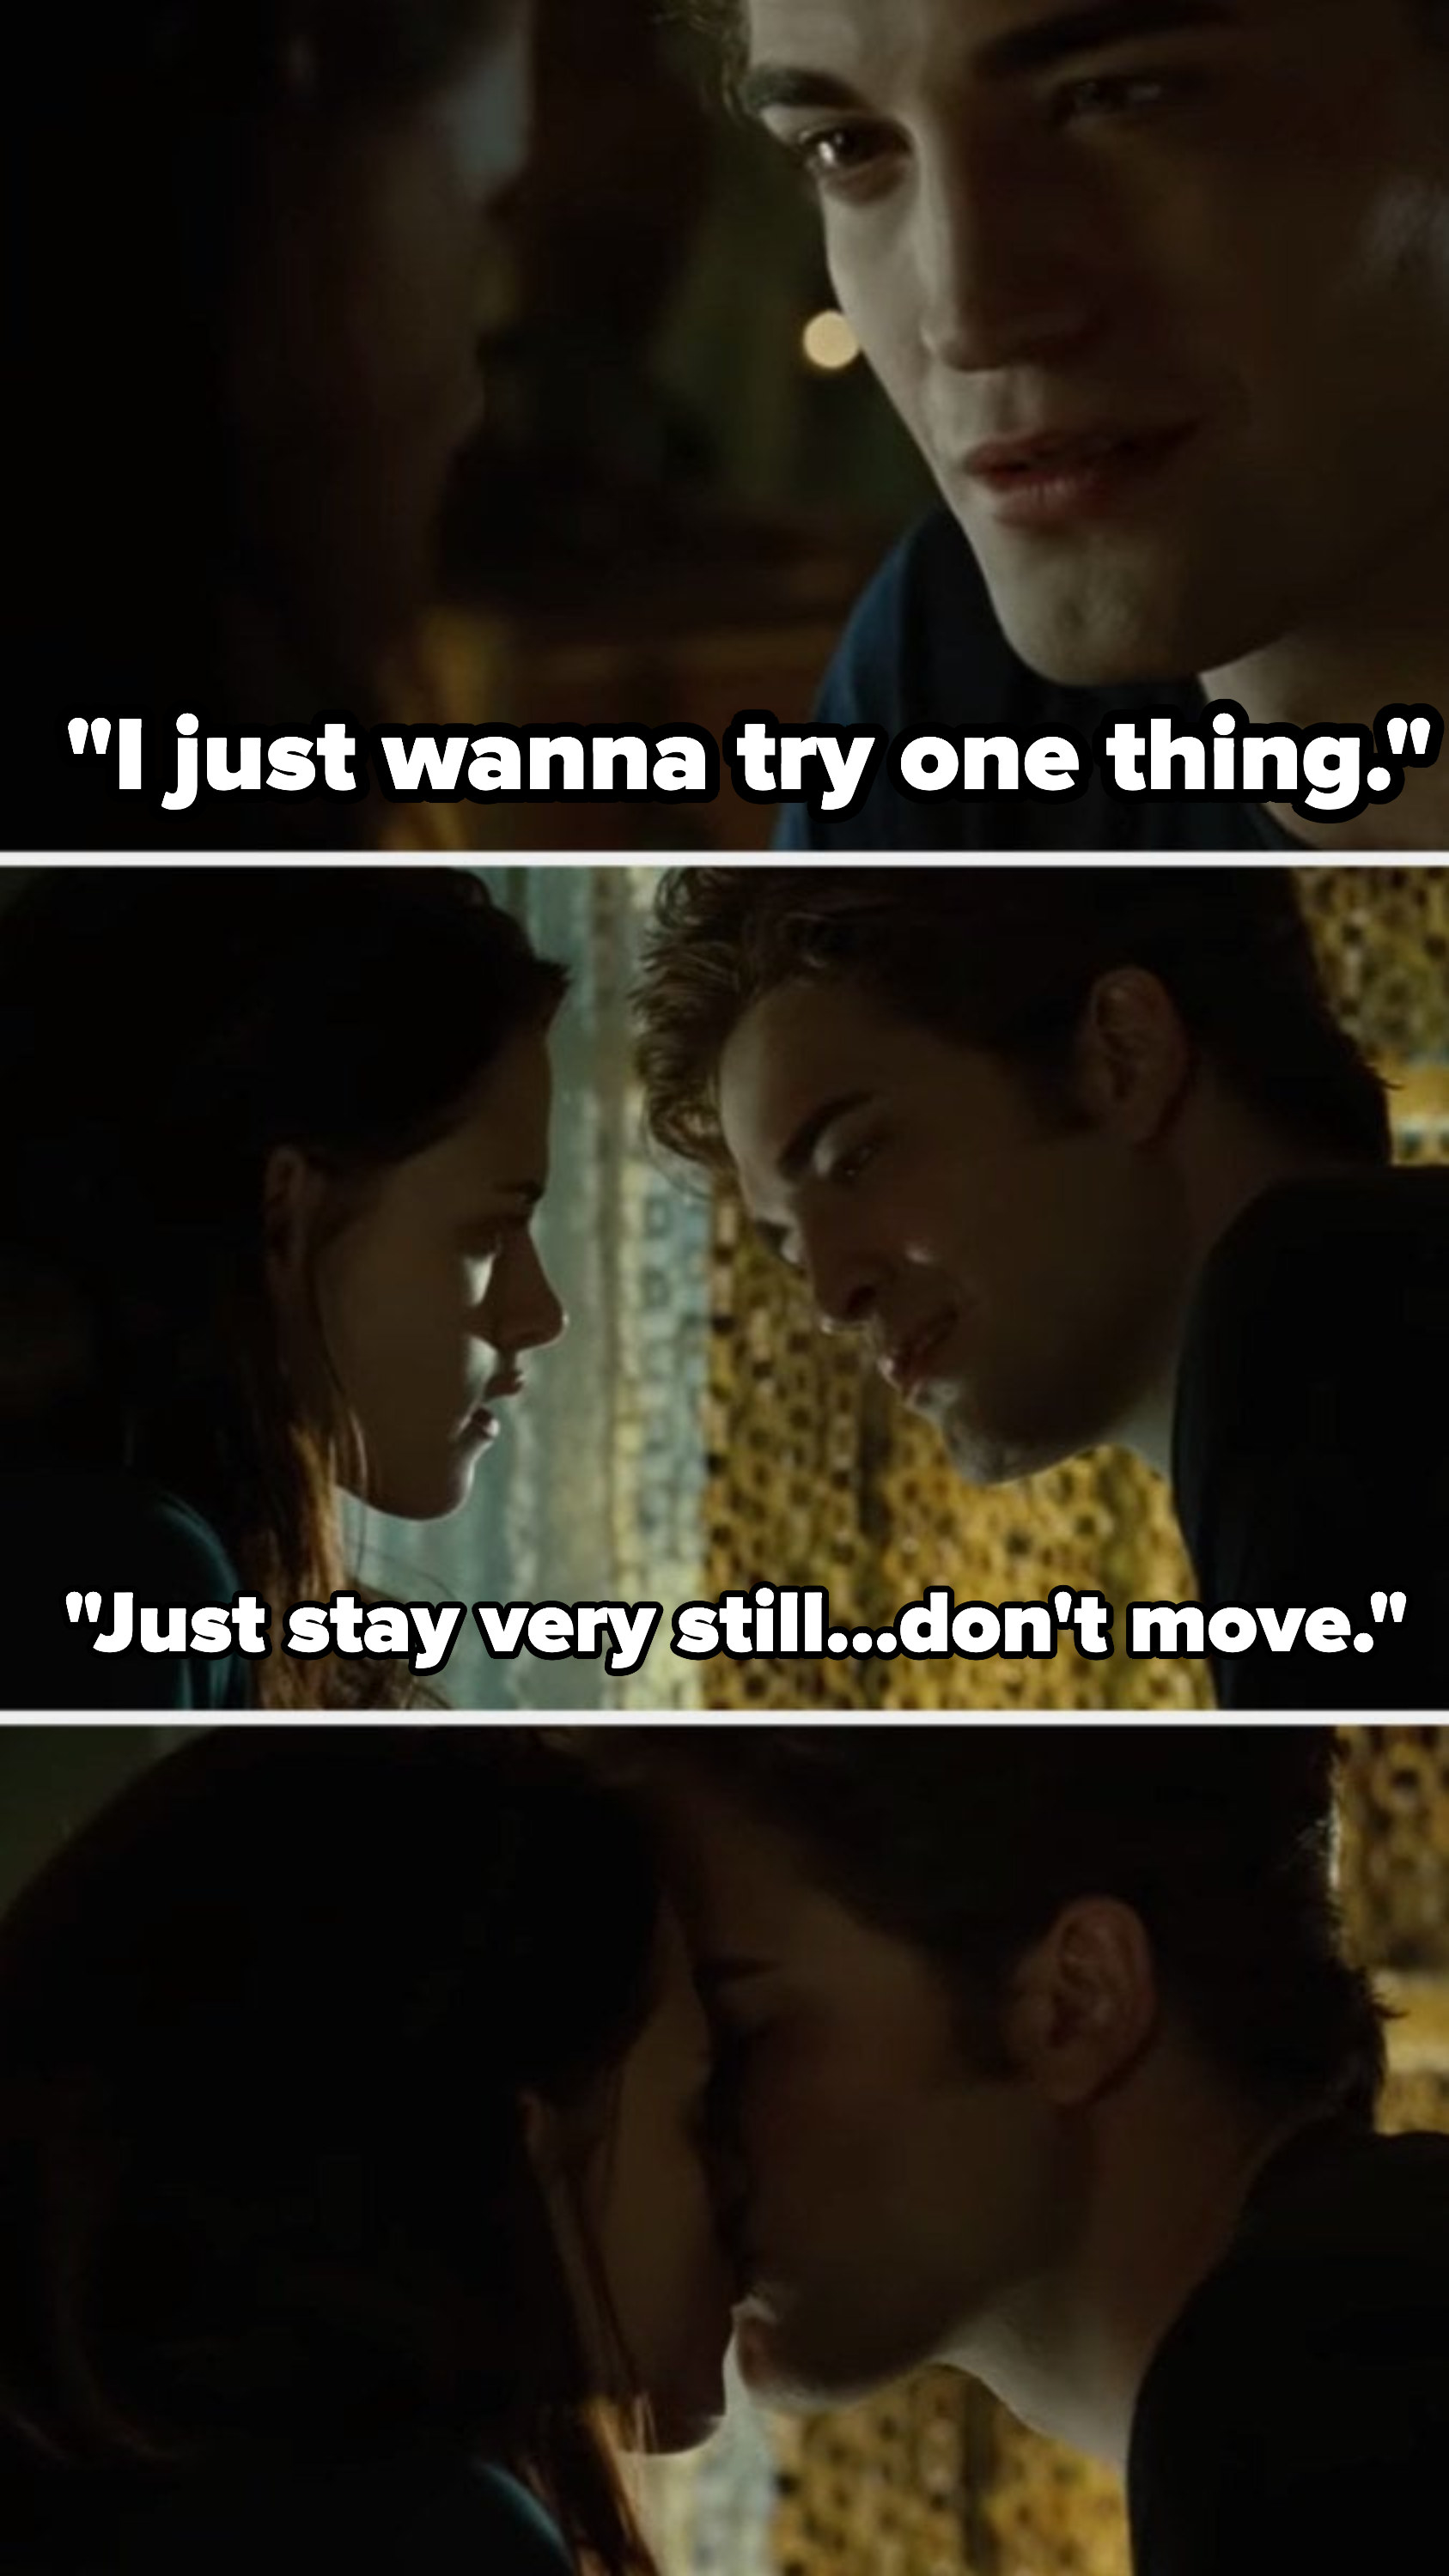 Edward telling Bella not to move, then kissing her in her bedroom